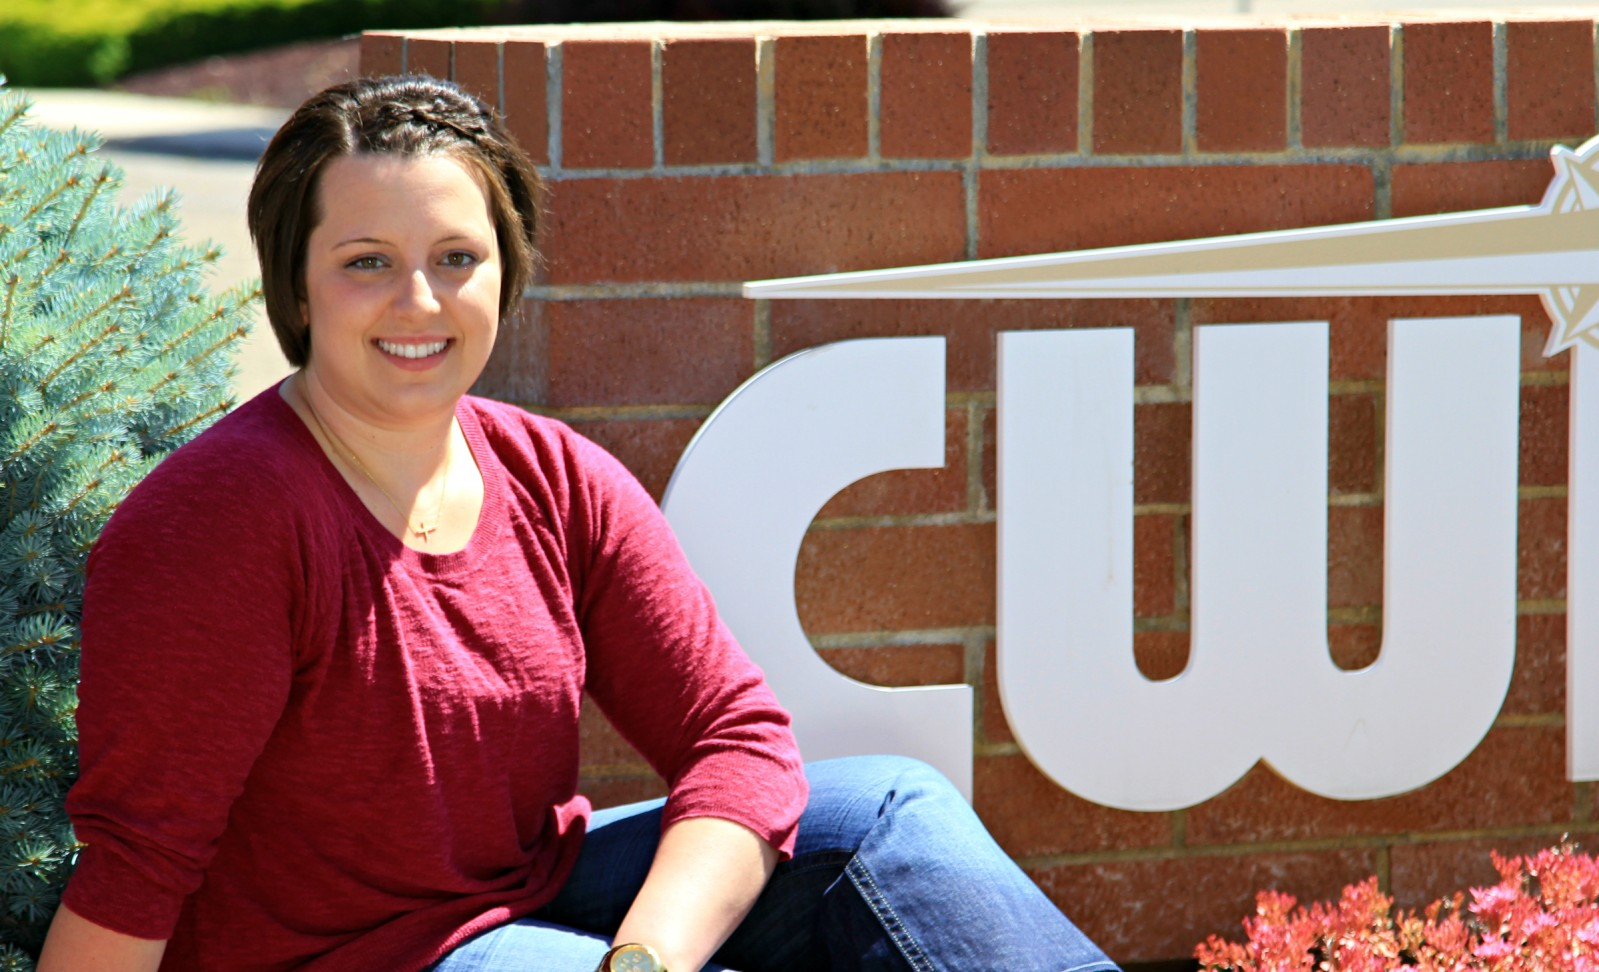 CWI Alumni and Scholarship Recipient Jayme Thomas, 2016